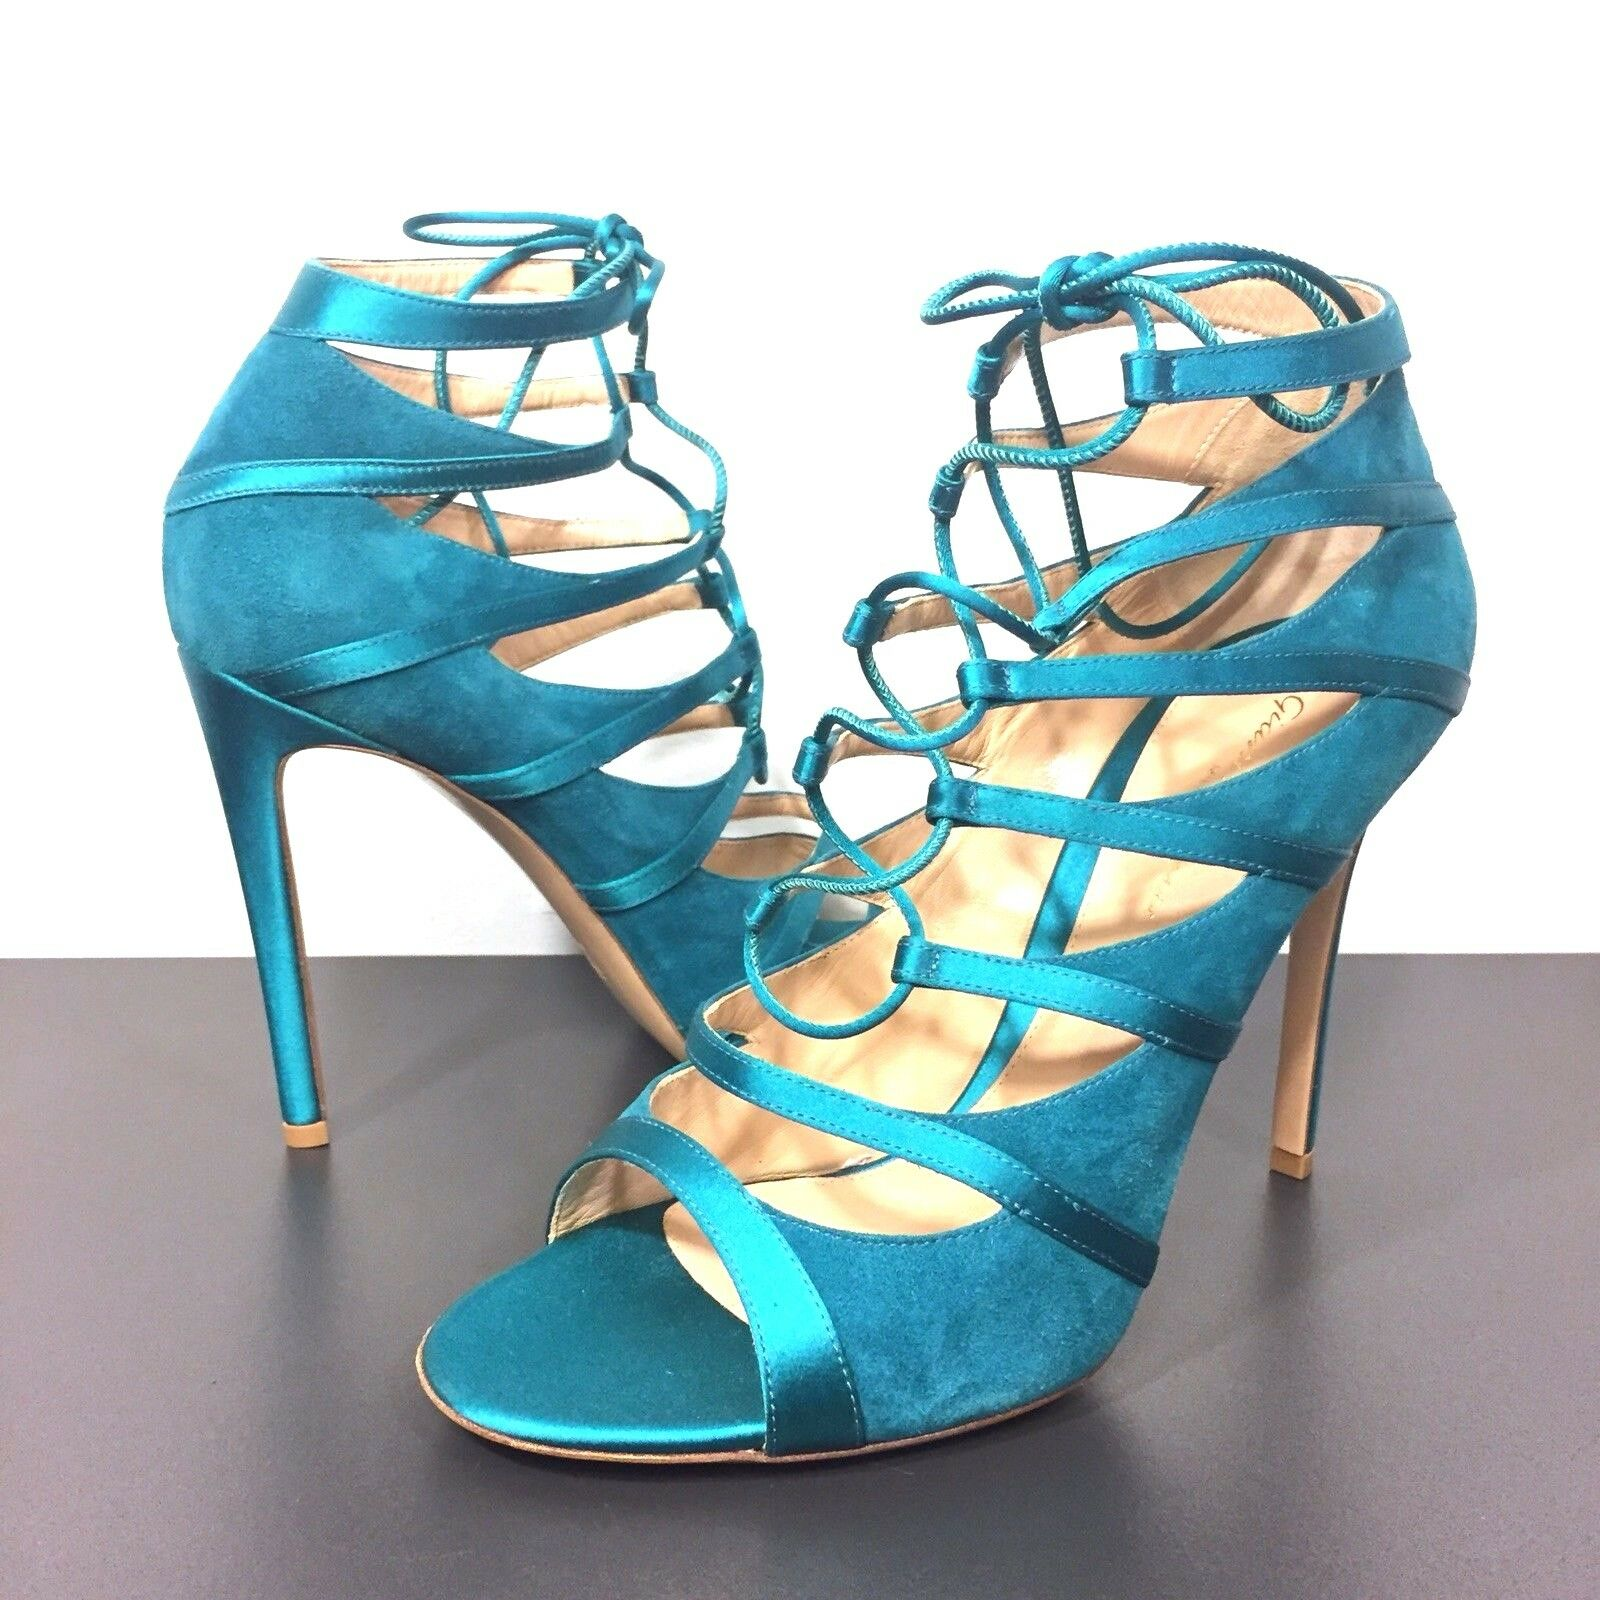 GIANVITO ROSSI Suede Satin Lace Up Open Toe Pumps Turquoise bluee 39 (MSRP  795)